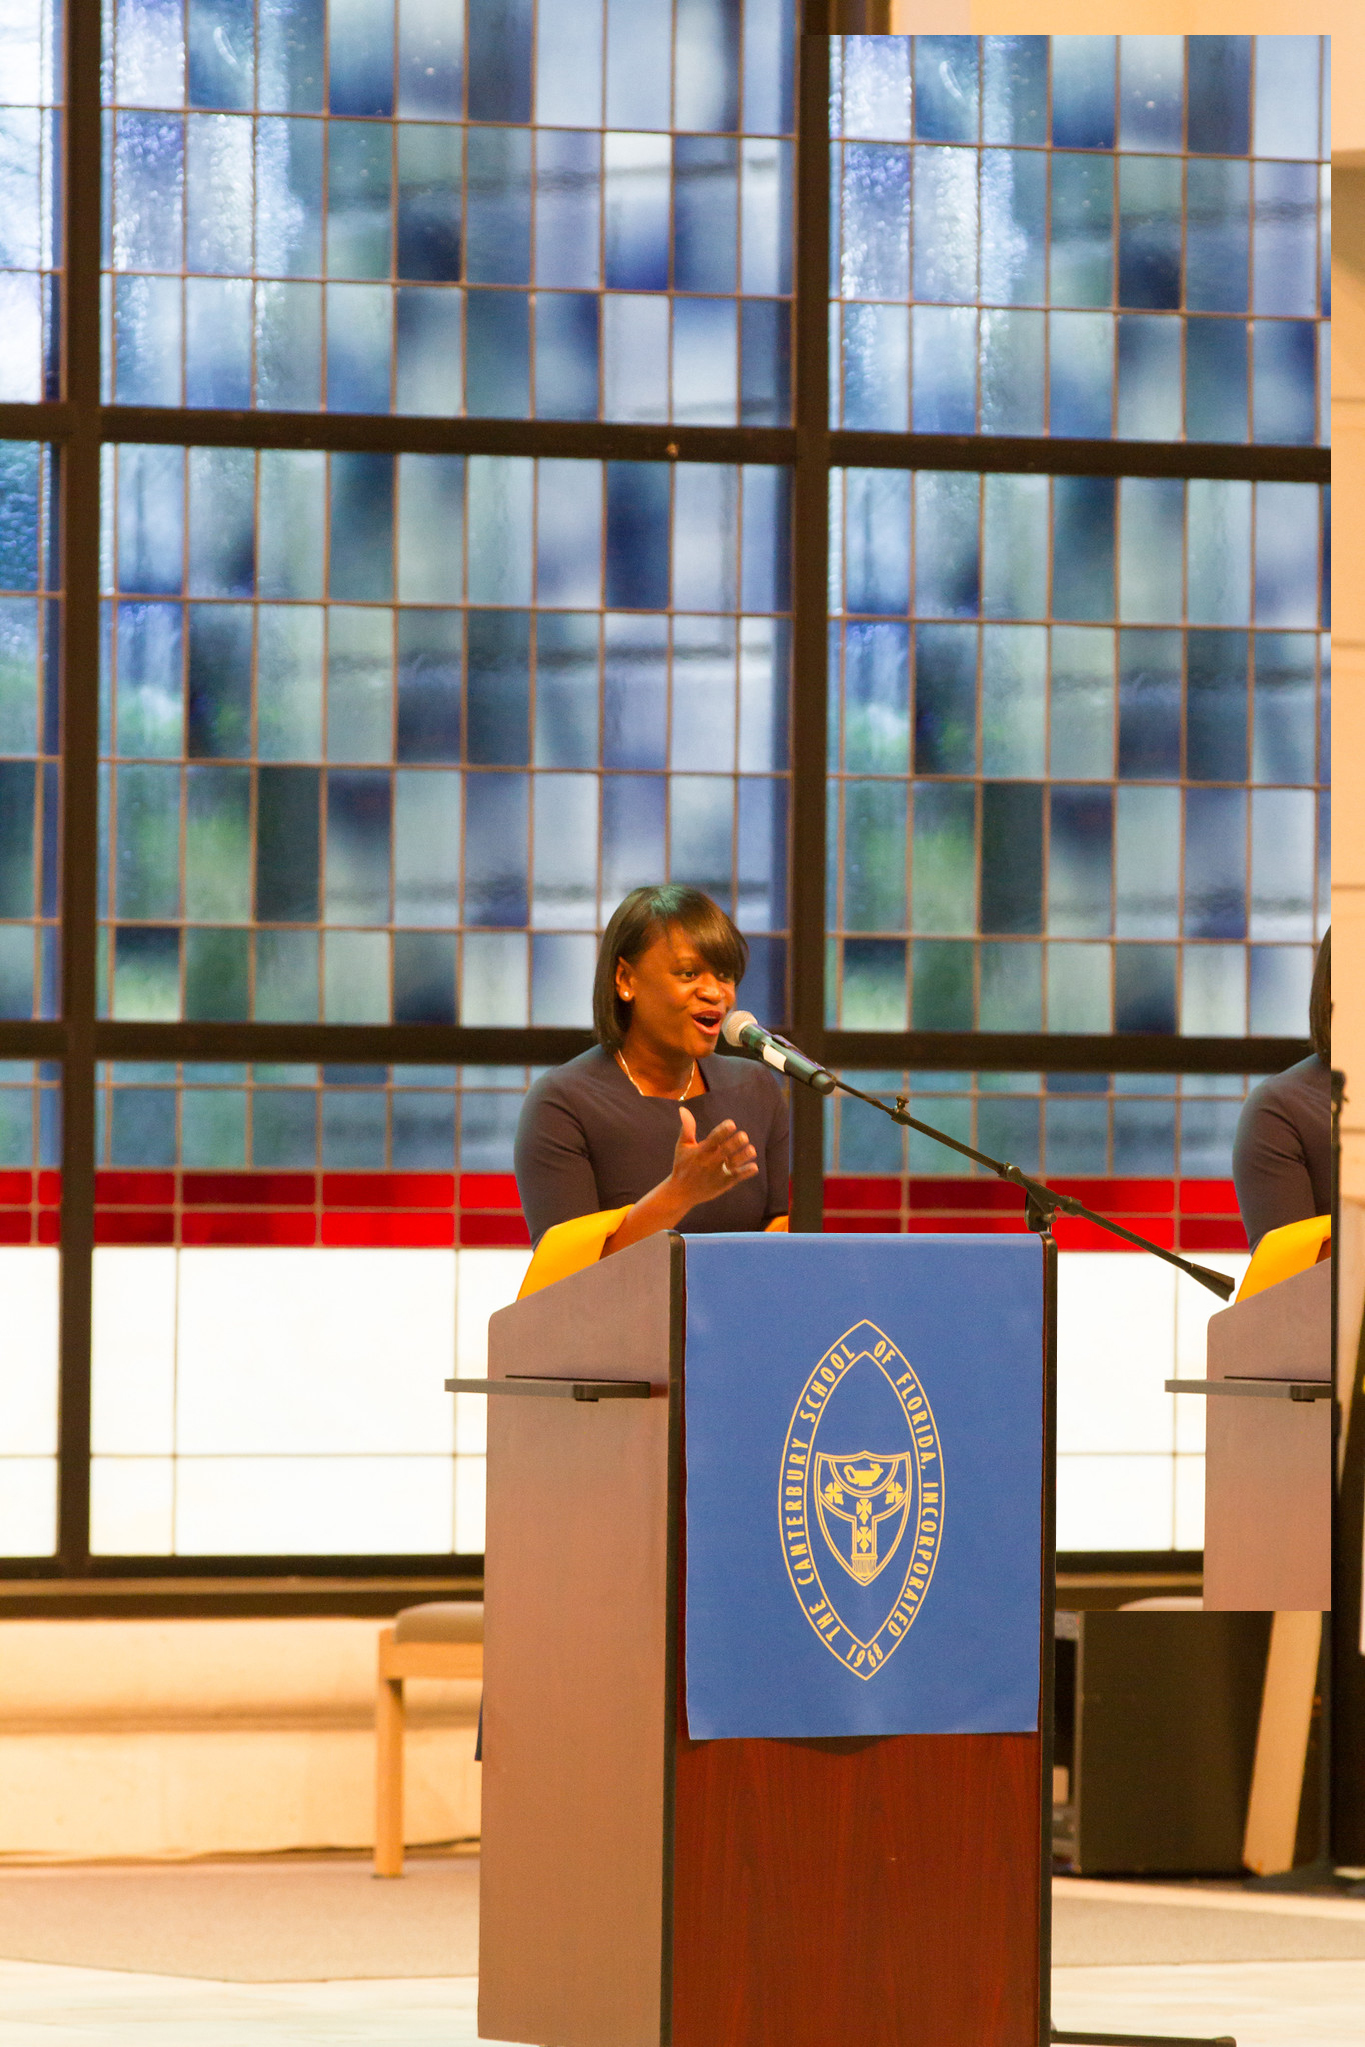 BACCALAUREATE ADDRESS AT THE 2018 COMMENCEMENT CEREMONY